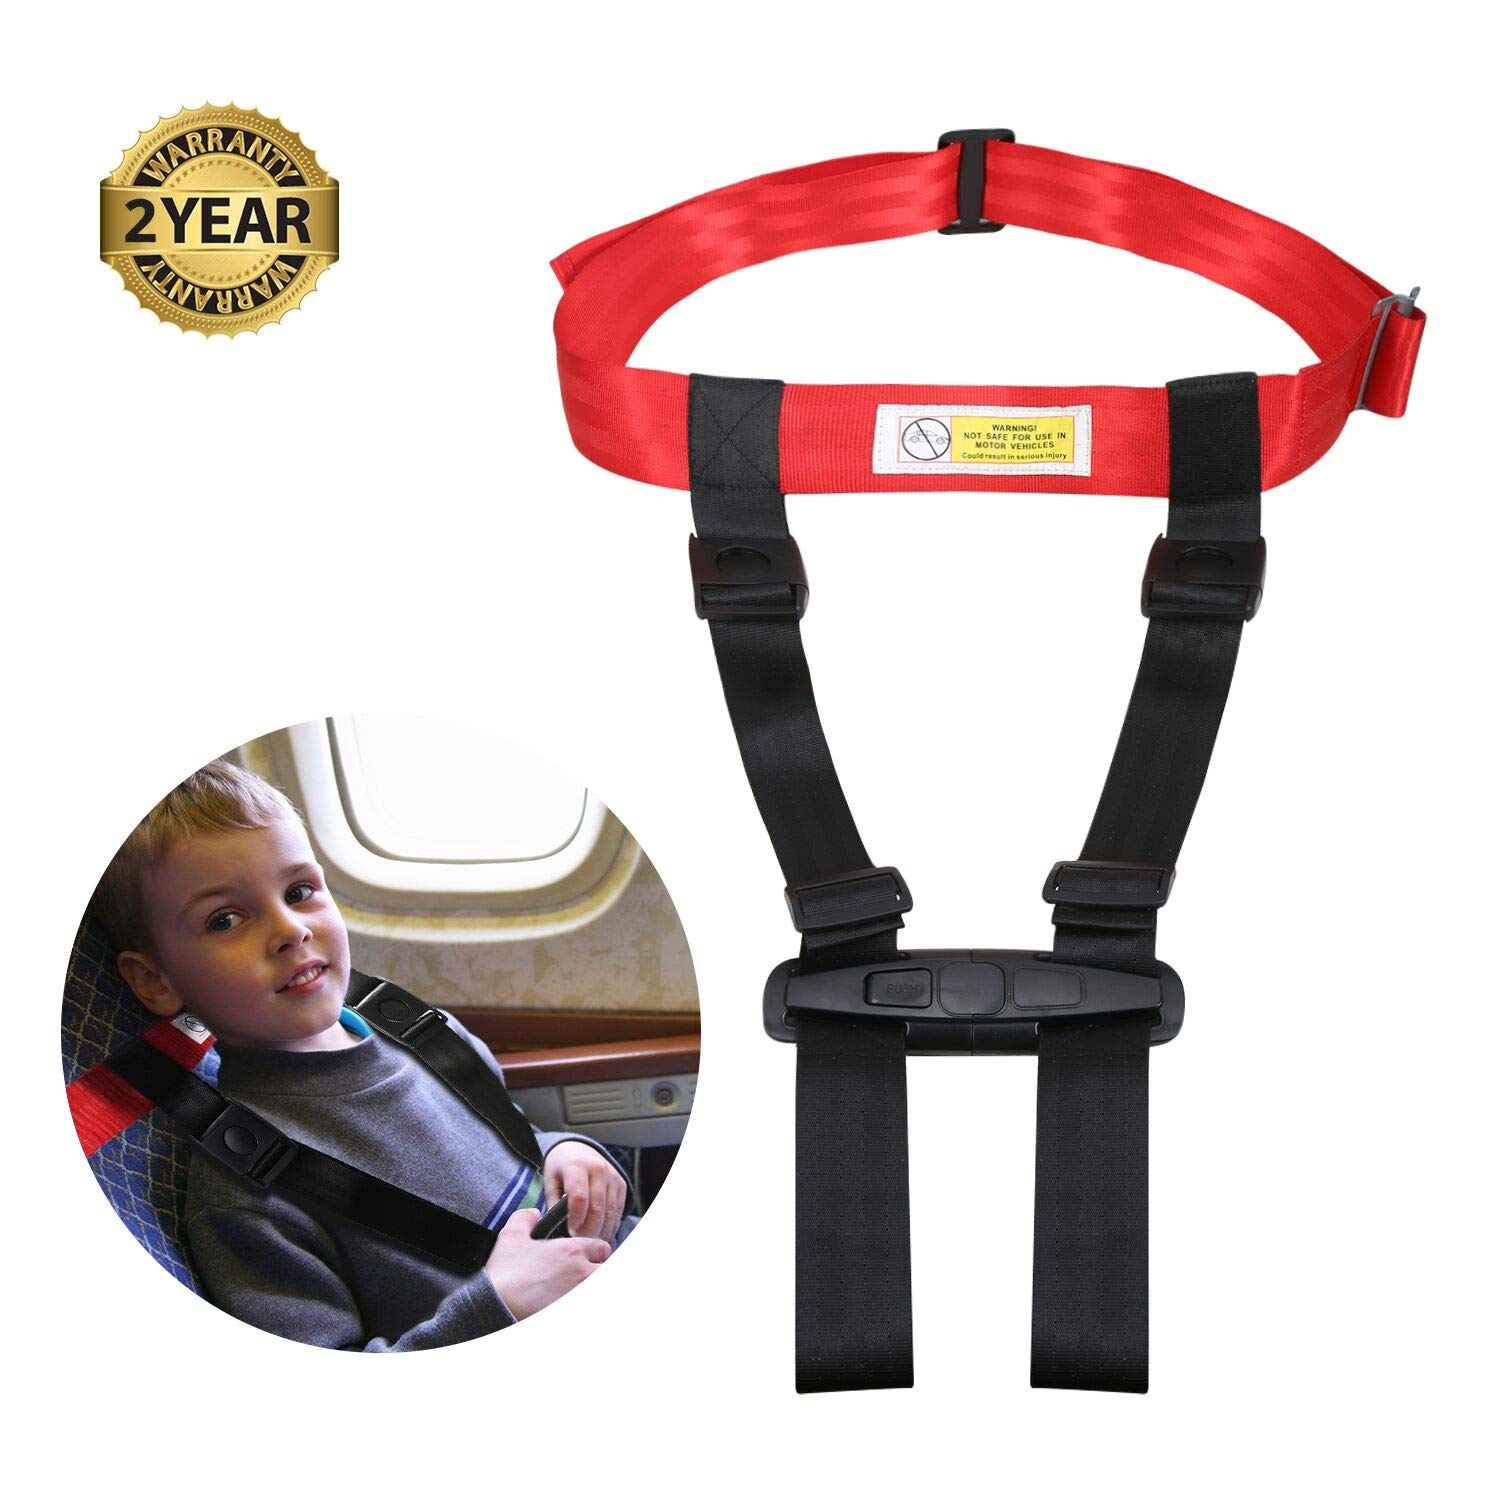 Airplane Safety Harness, Cares Clip Strap with Fly Travel for Baby Toddlers Kids Child Infant Newborn FAA Approved